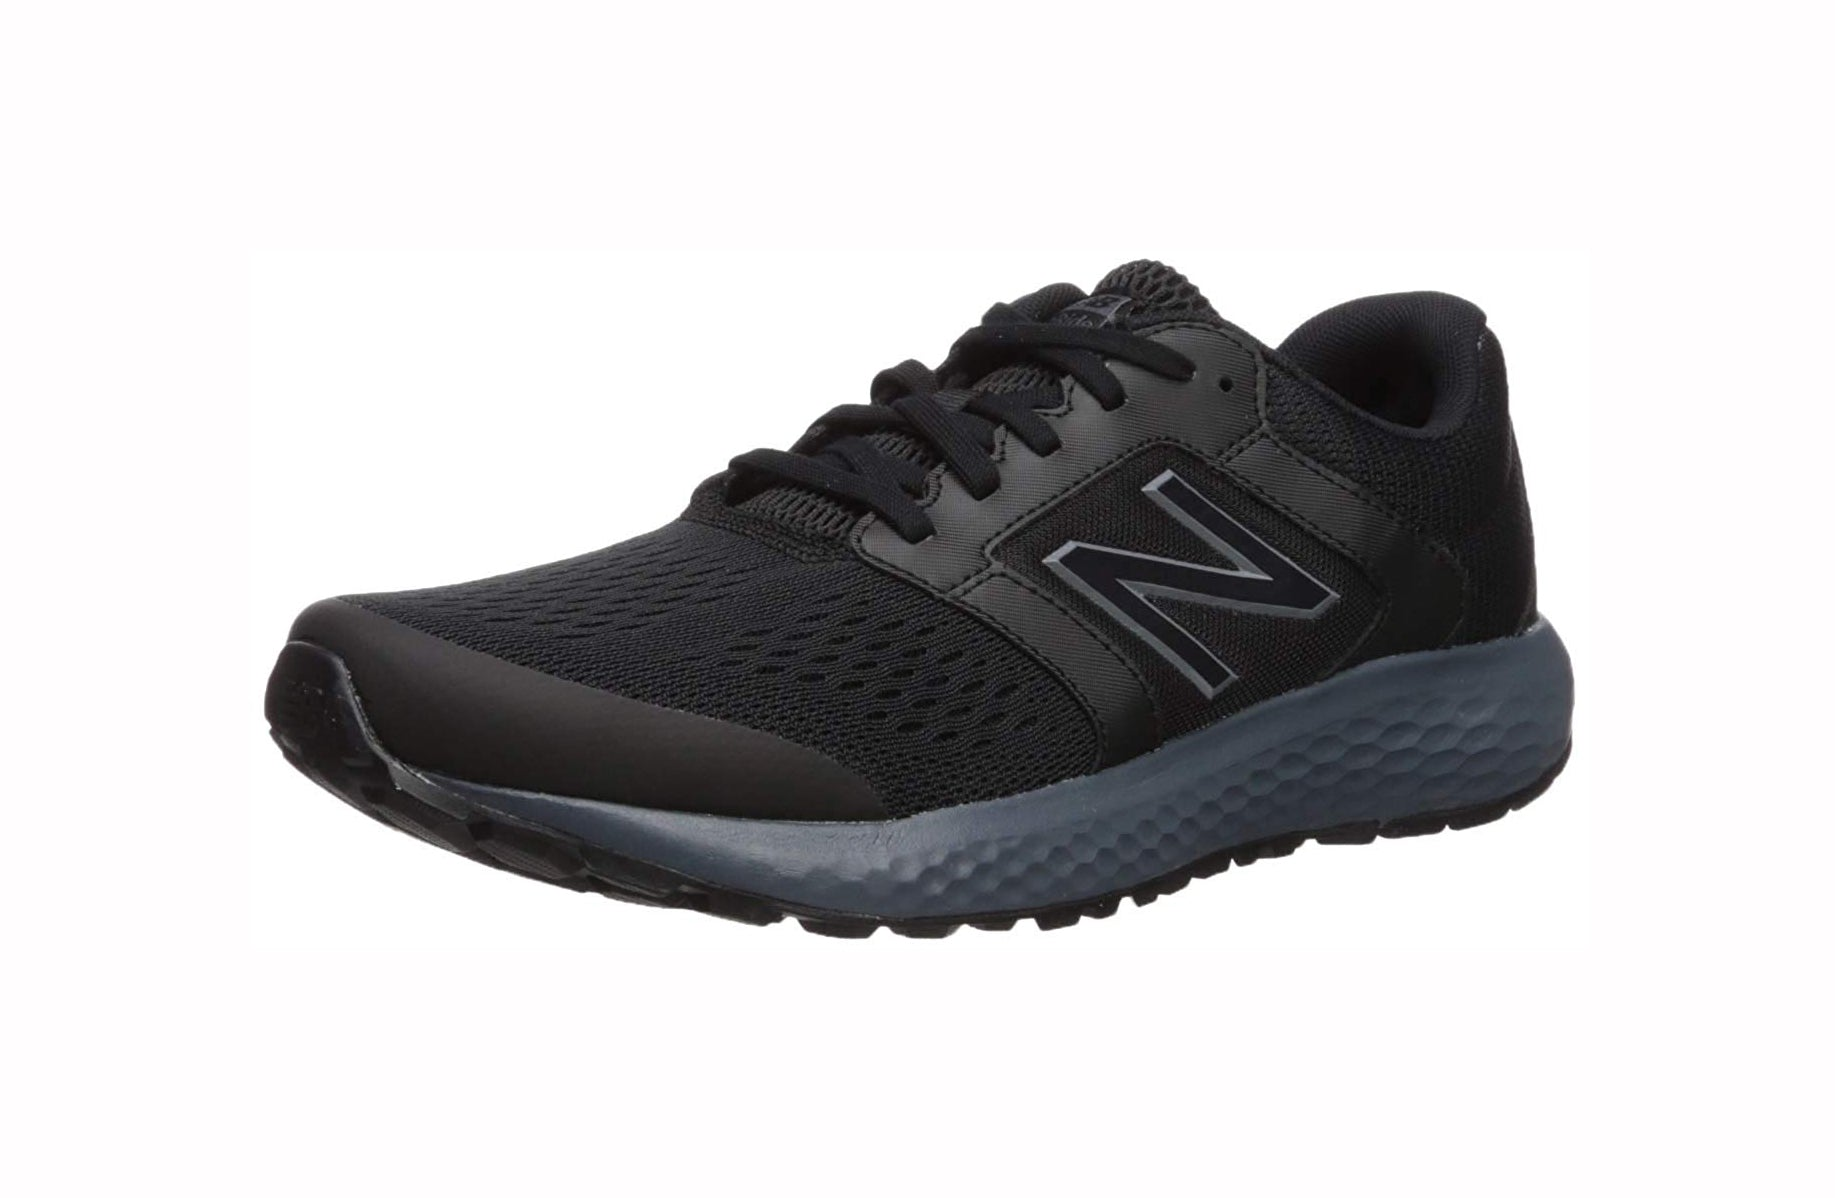 New Balance 520 Black/Navy Men's Shoes